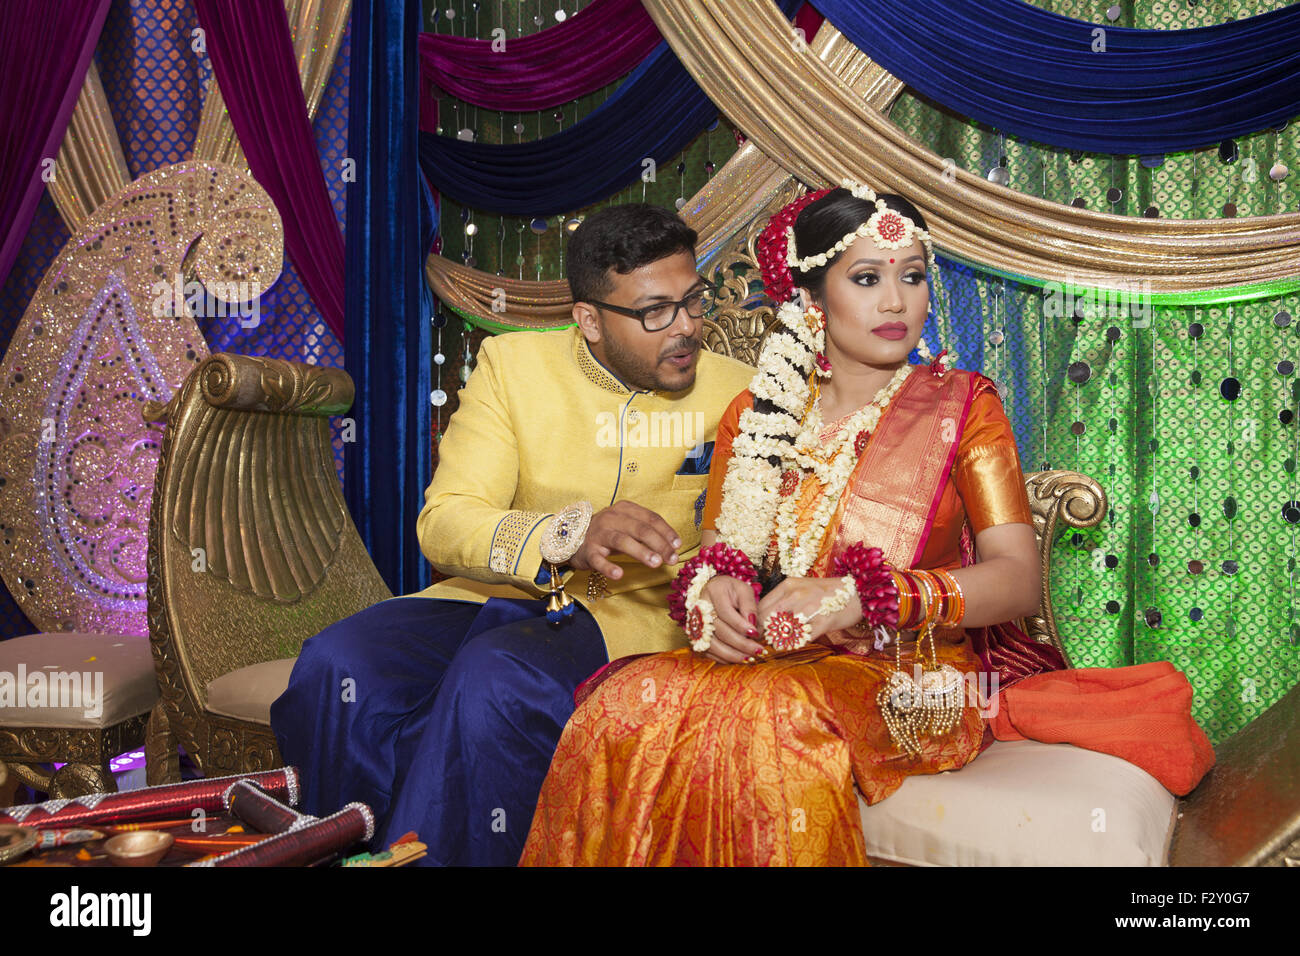 Bangladeshi Wedding Bride And Groom At Their Reception In Stock